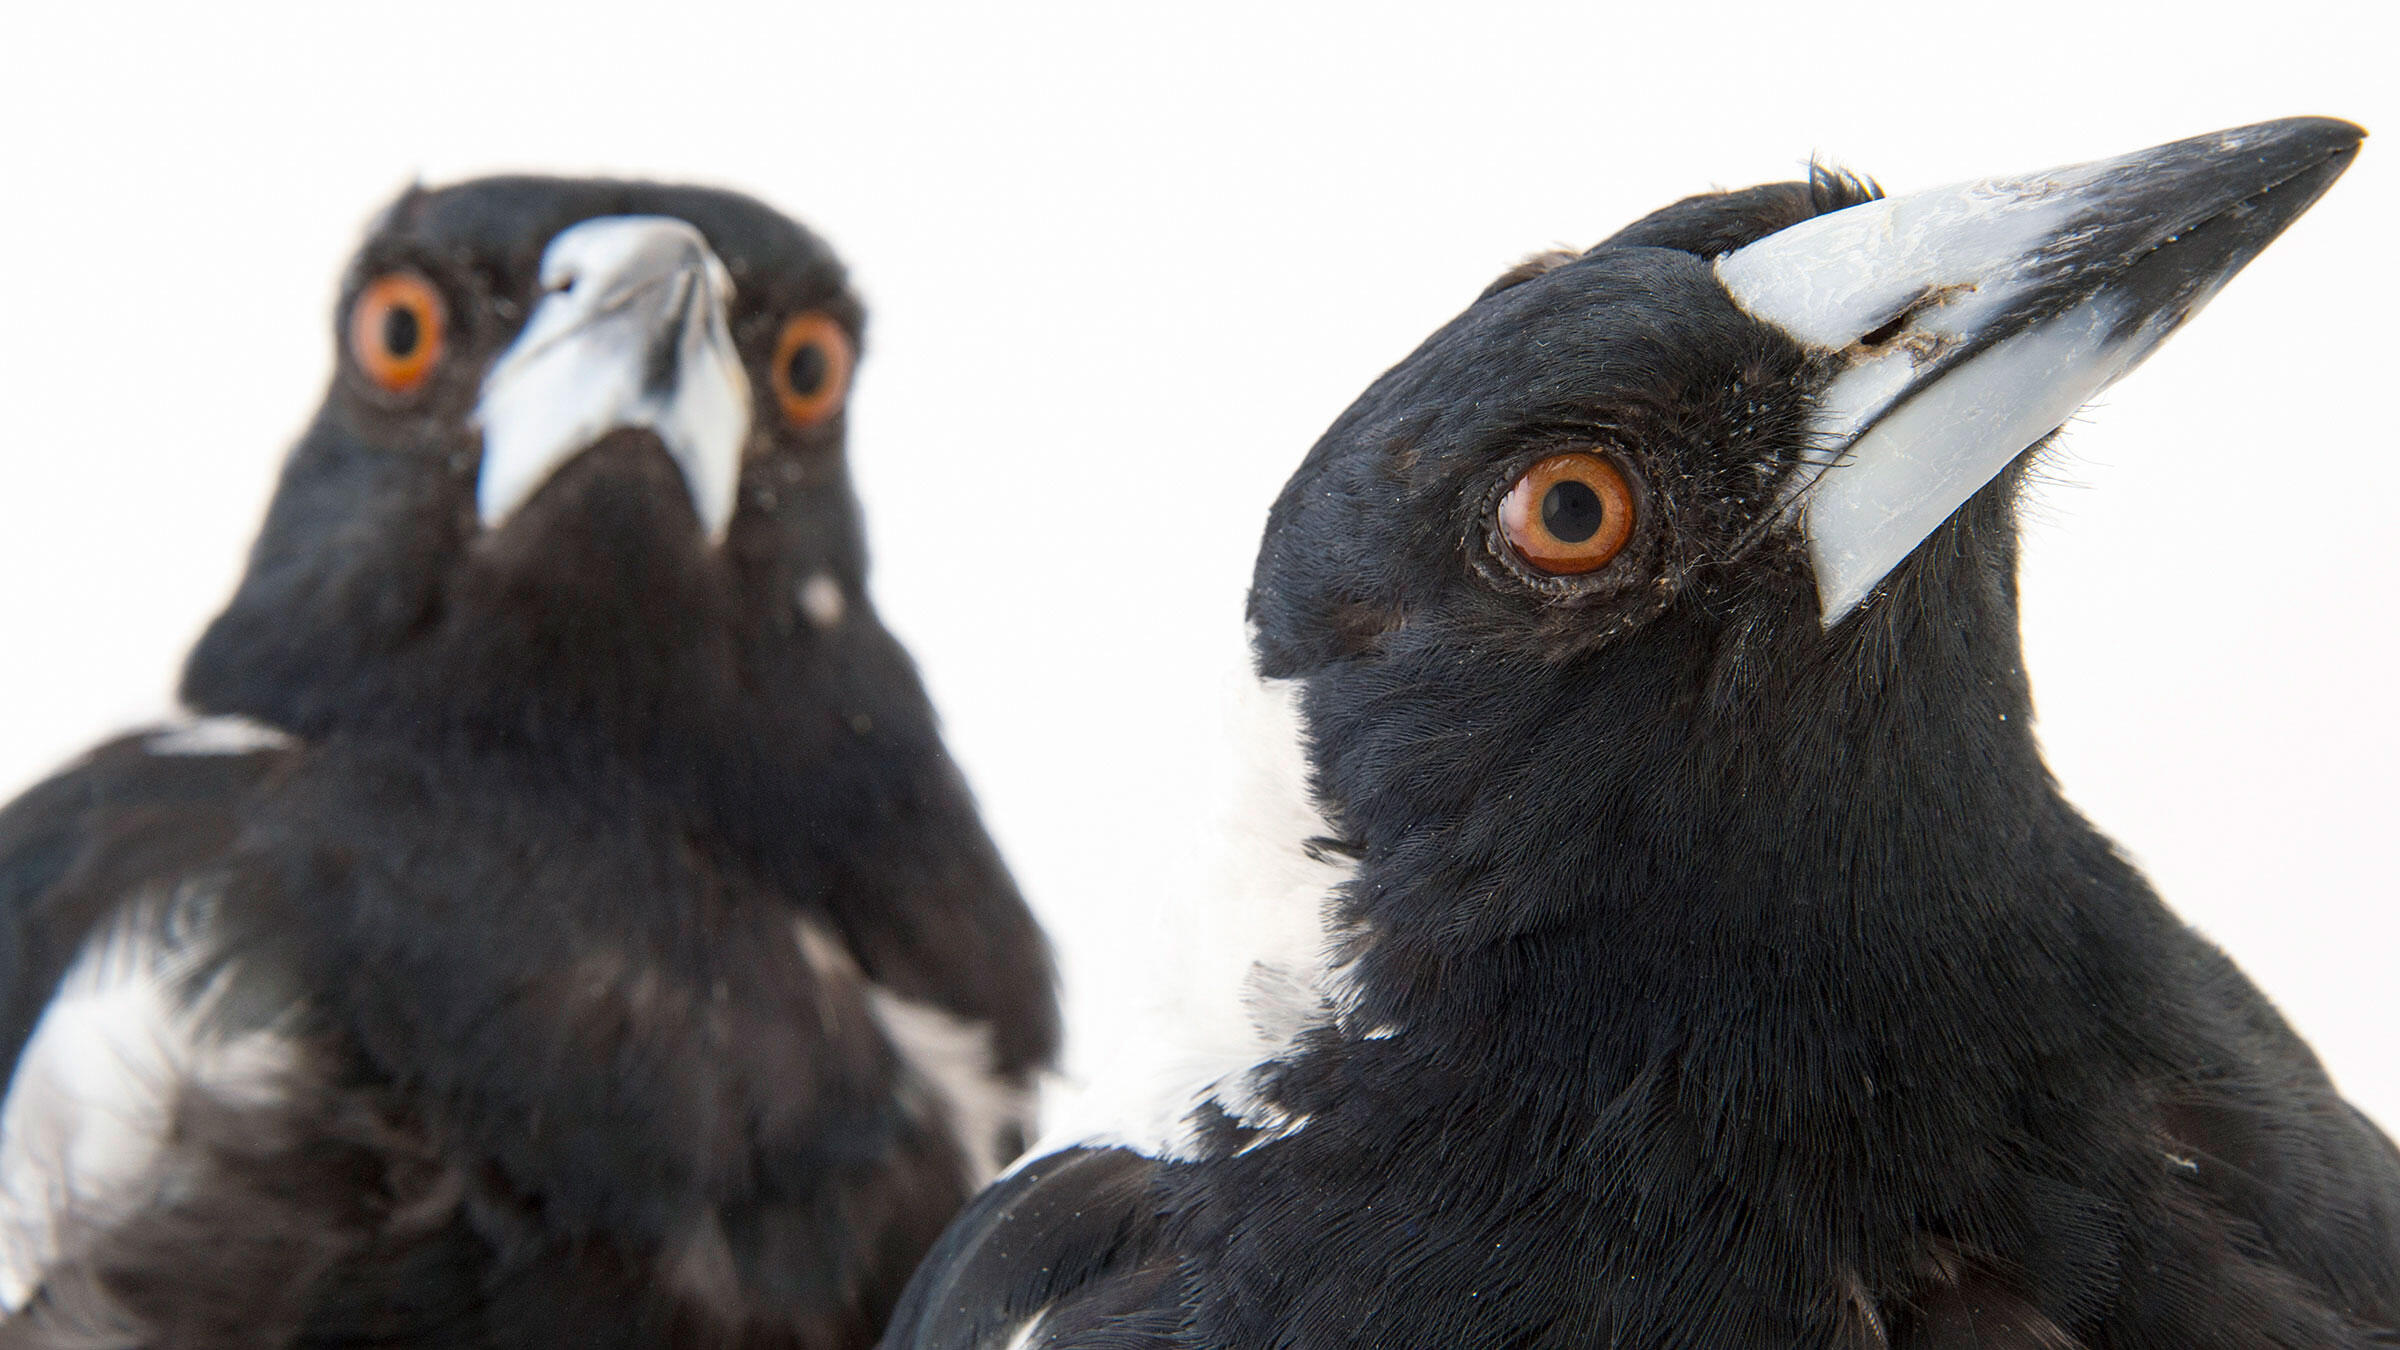 White-backed Magpies. The corvid family, to which magpies belong, is often regarded as one of the bird world's smartest. Joel Sartore/National Geographic Photo Ark/National Geographic Creative